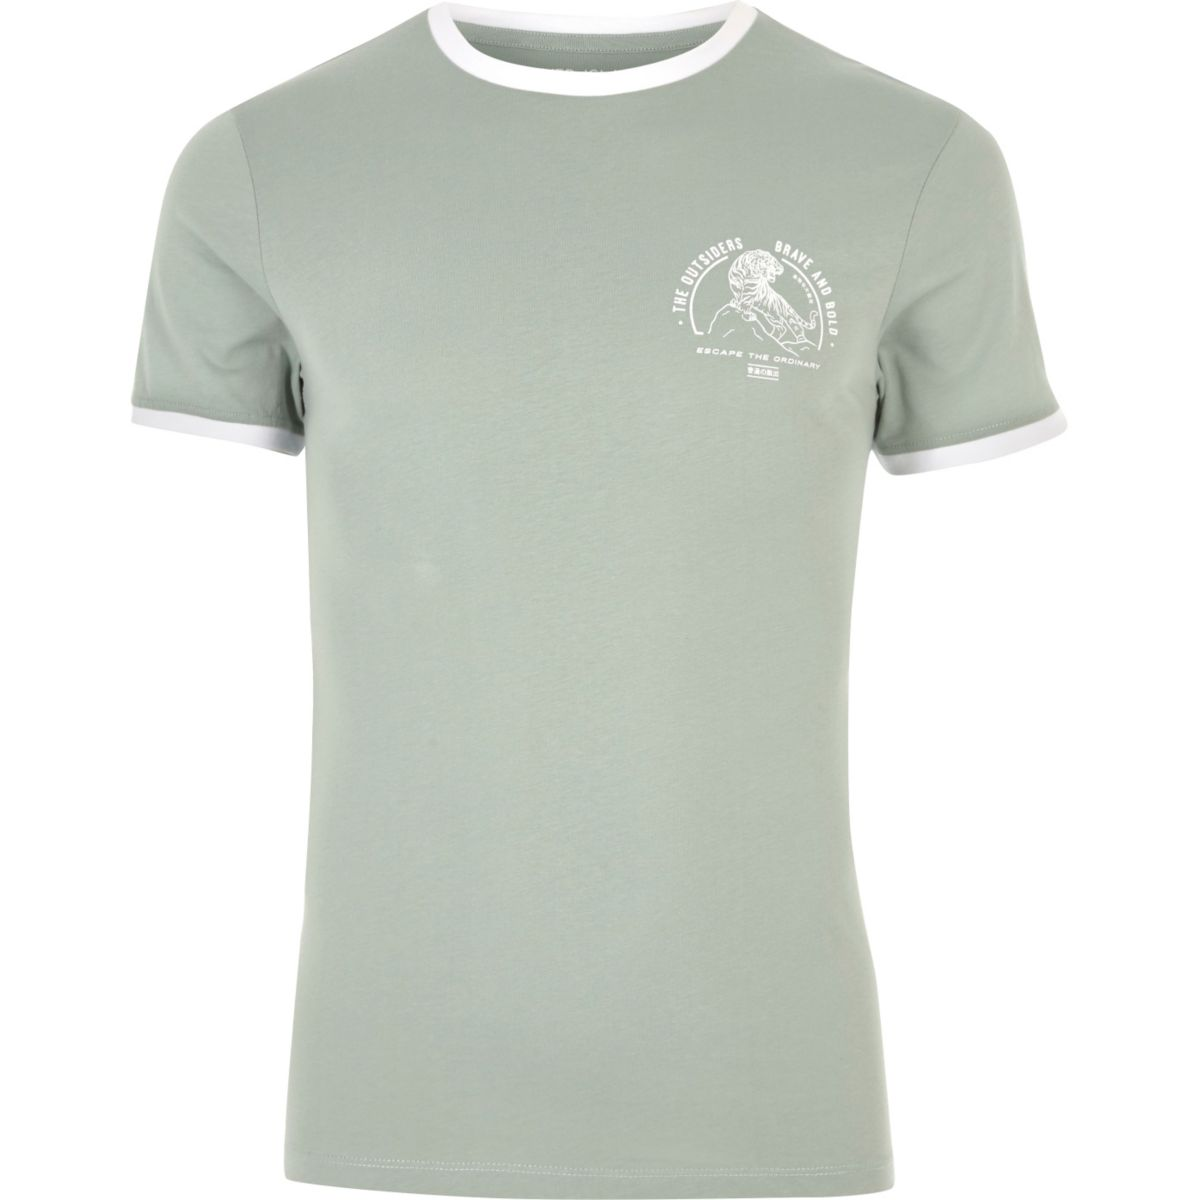 Ming green tipped collar muscle fit T-shirt